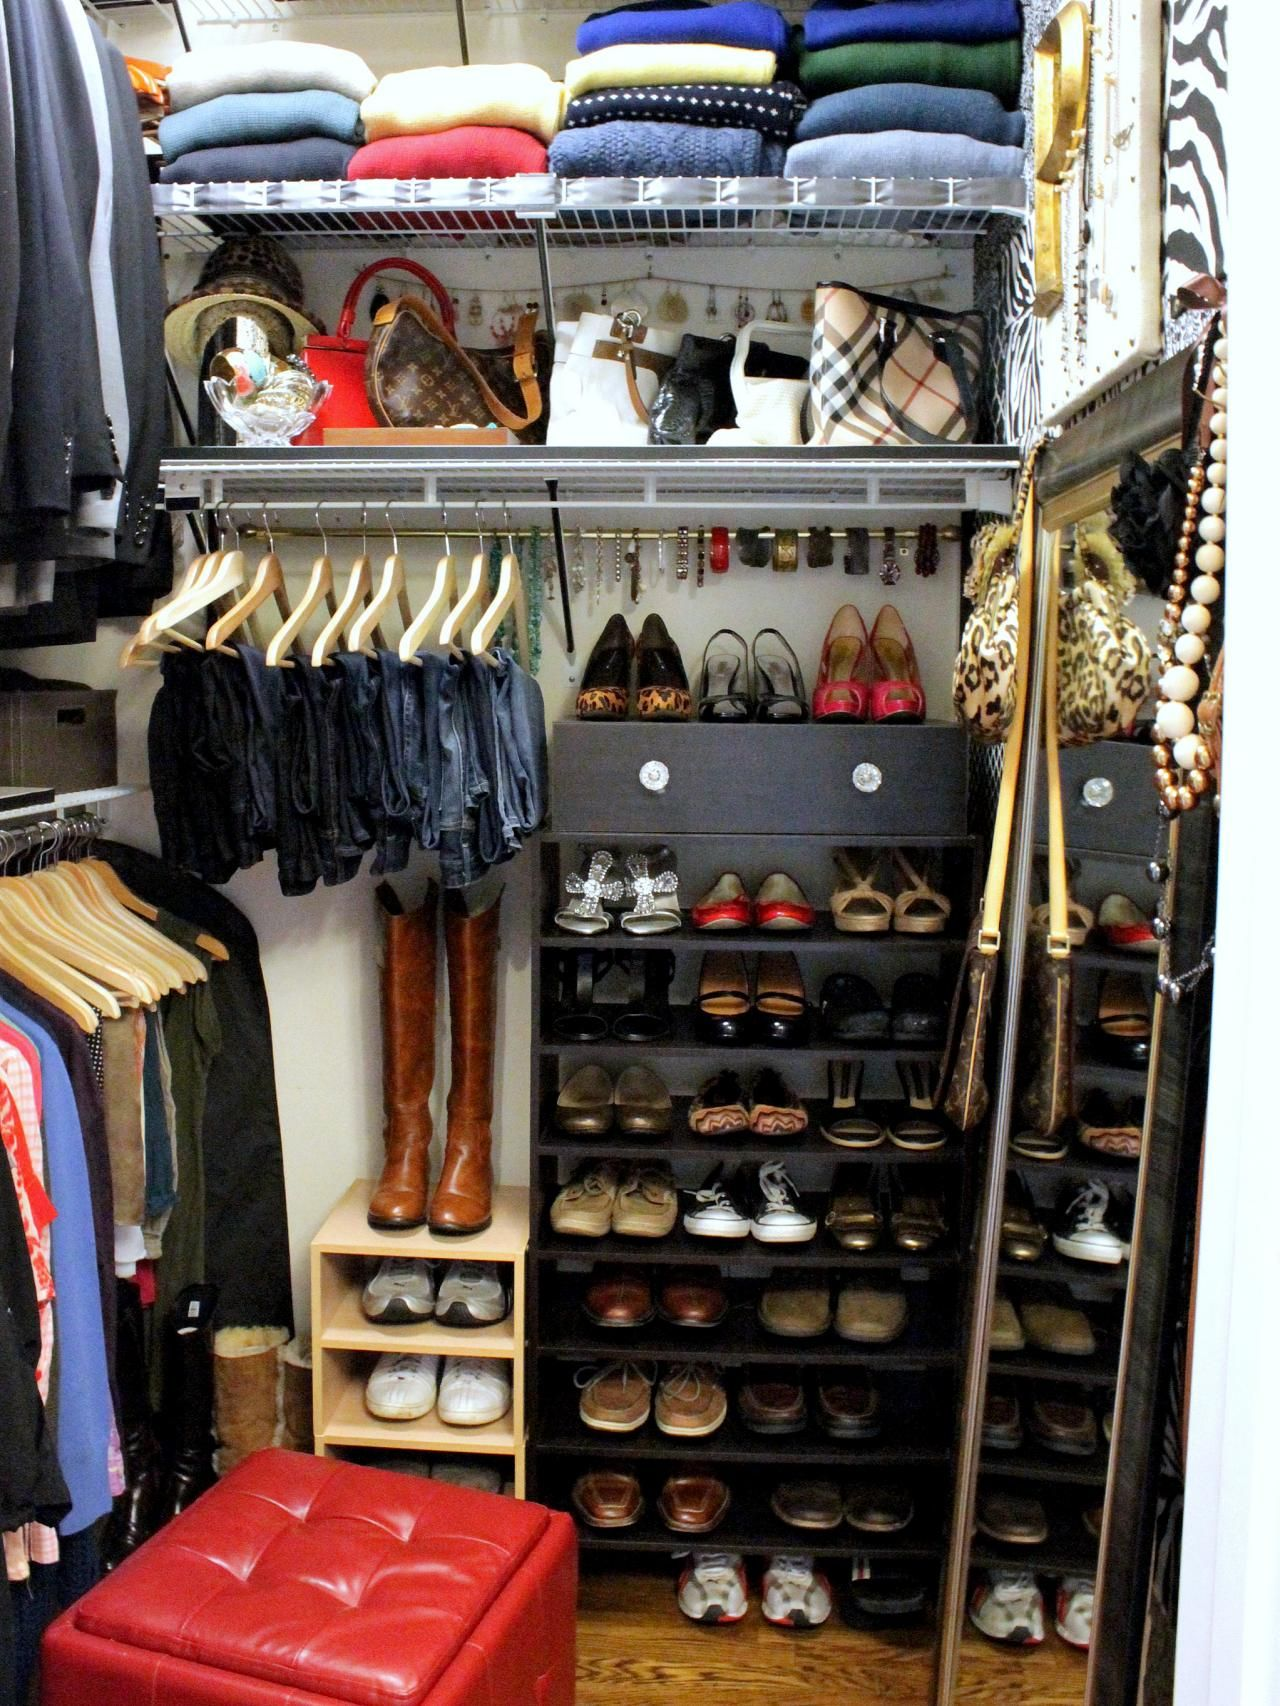 A Utility Closet Might Be One Of The More Industrial Spaces In The Home, But